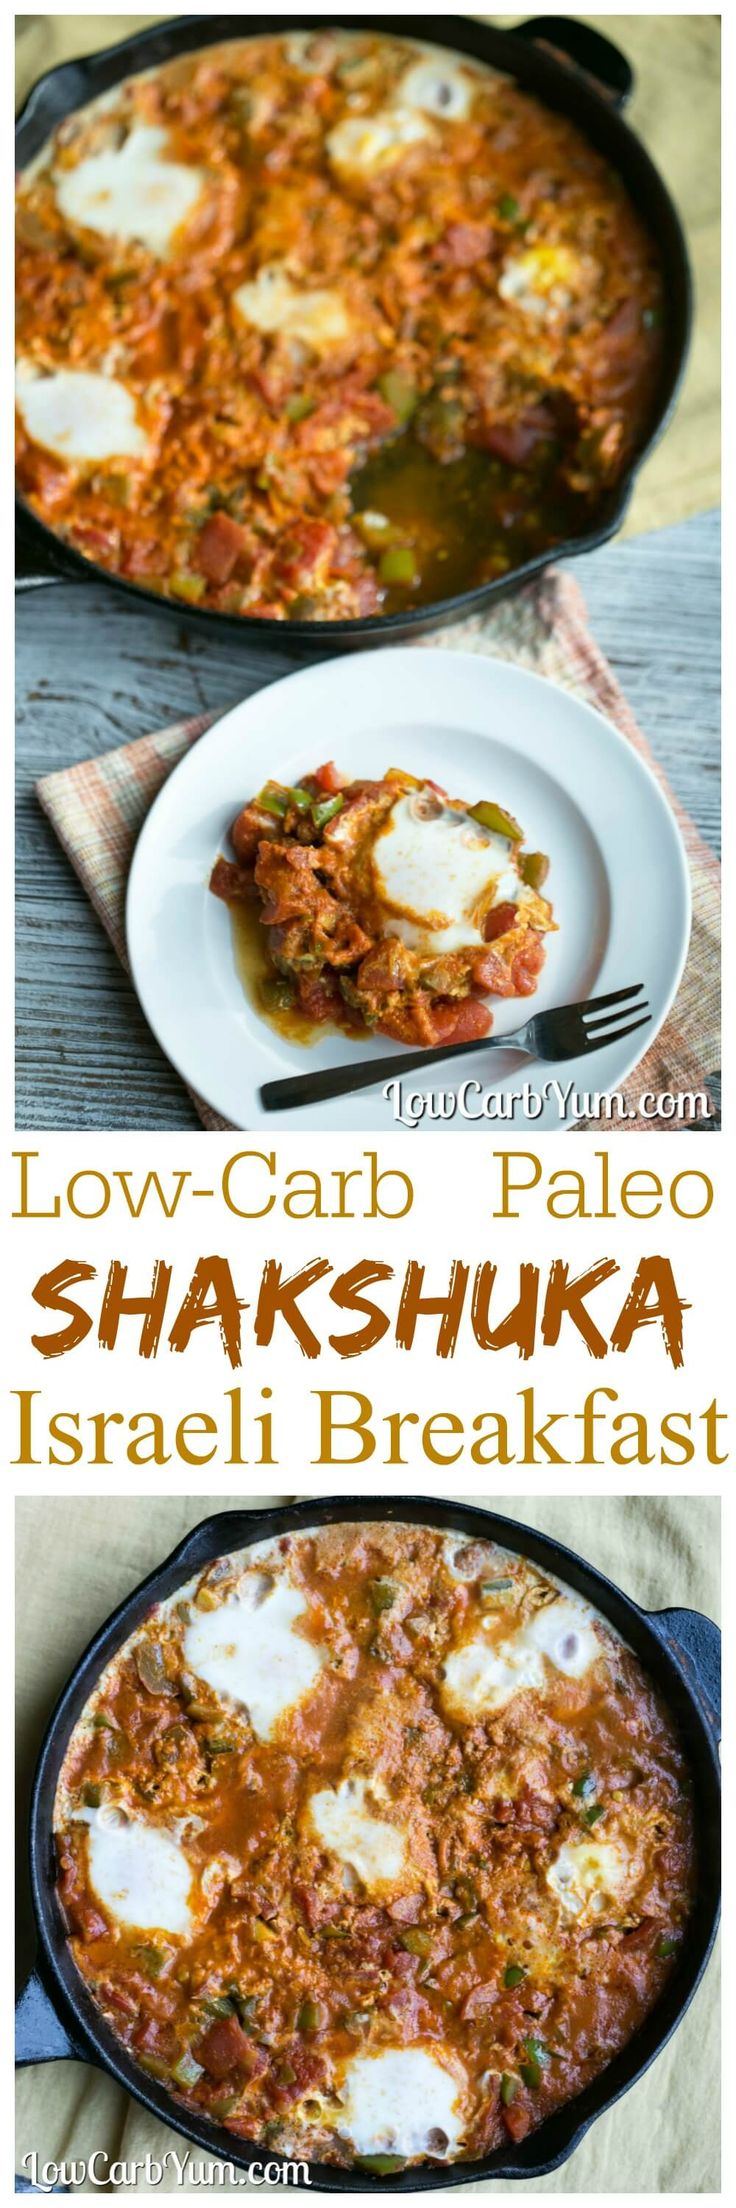 Shakshuka israeli breakfast yiddish cookbook recipe for Cuisine yiddish